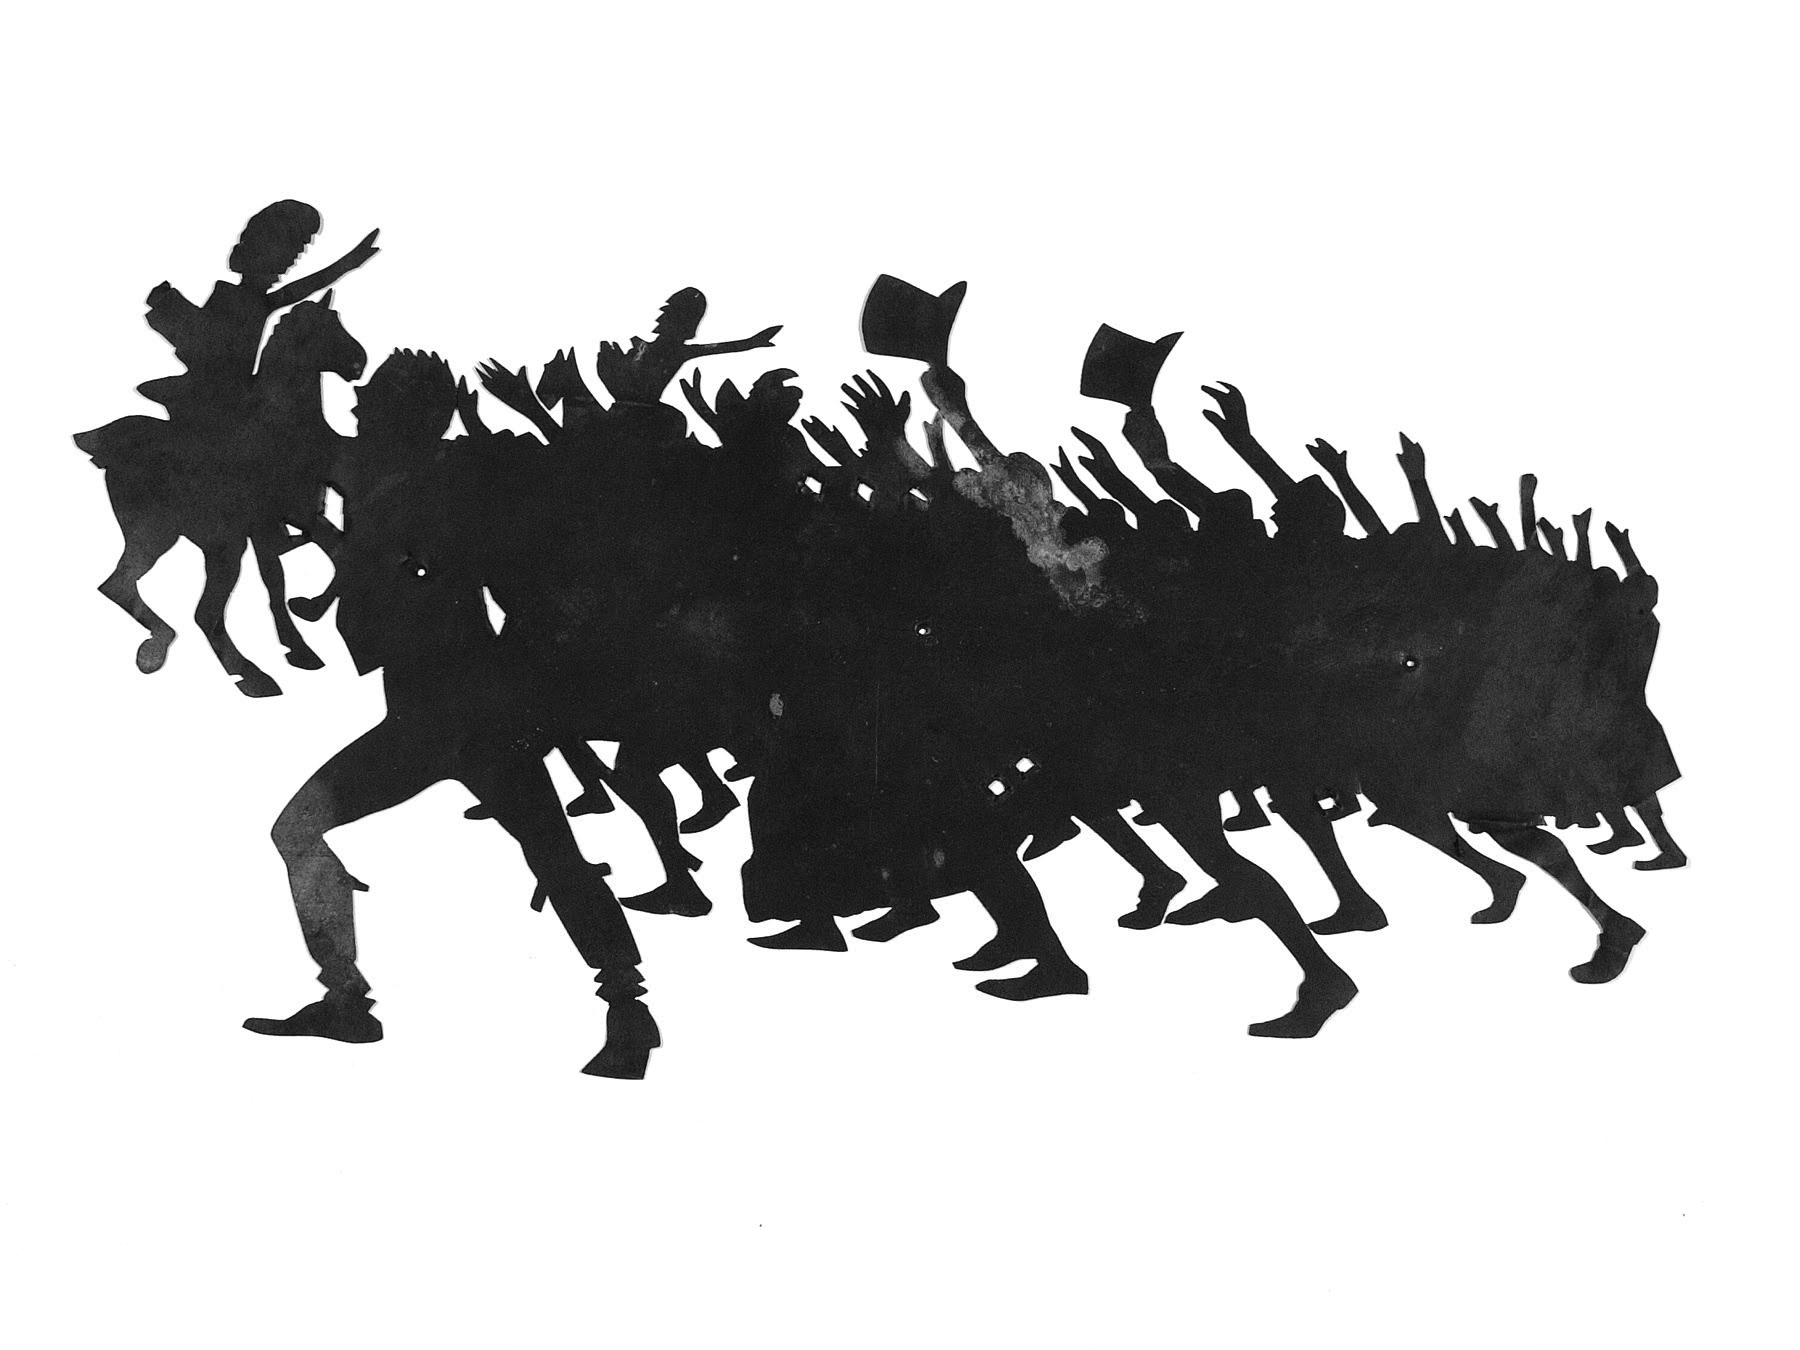 http://upload.wikimedia.org/wikipedia/commons/3/3c/Caran_d%27Ache_-_Zinc_silhouette_for_the_Chat_Noir_cabaret_shadow_play_L%27%C3%89pop%C3%A9e_(The_Epic)_-_Google_Art_Project.jpg